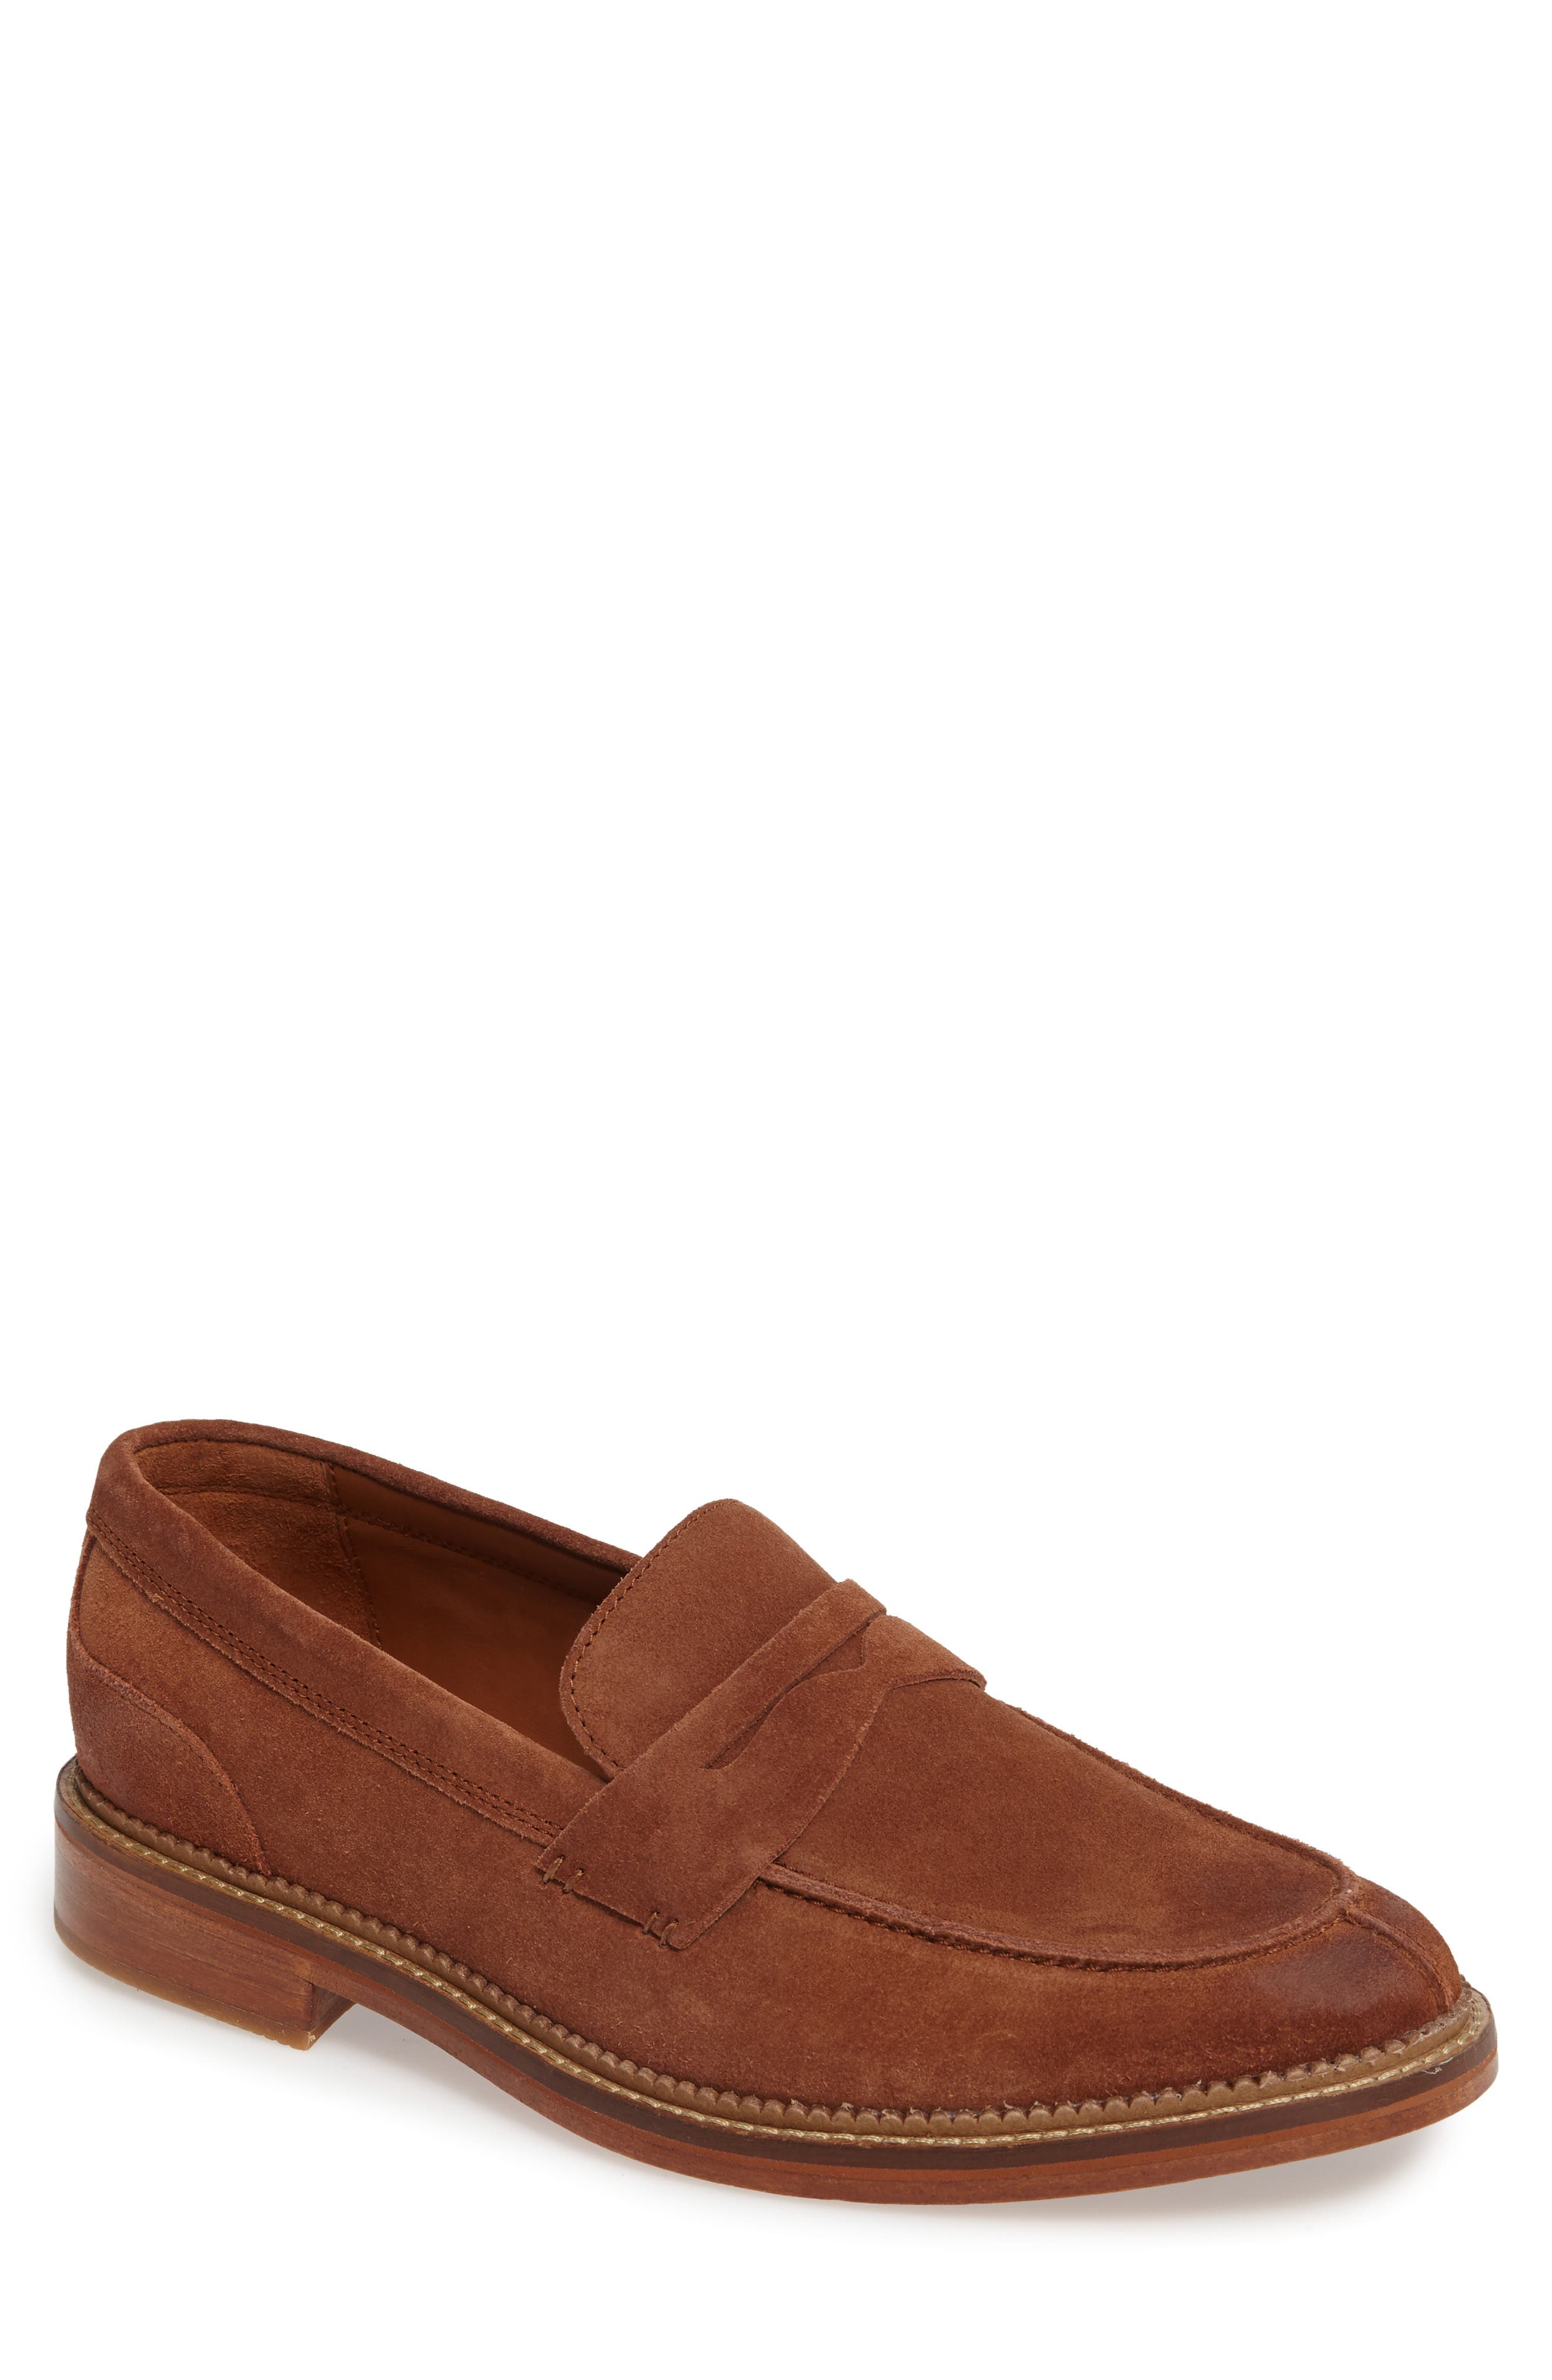 Ravenwood Penny Loafer,                             Main thumbnail 2, color,